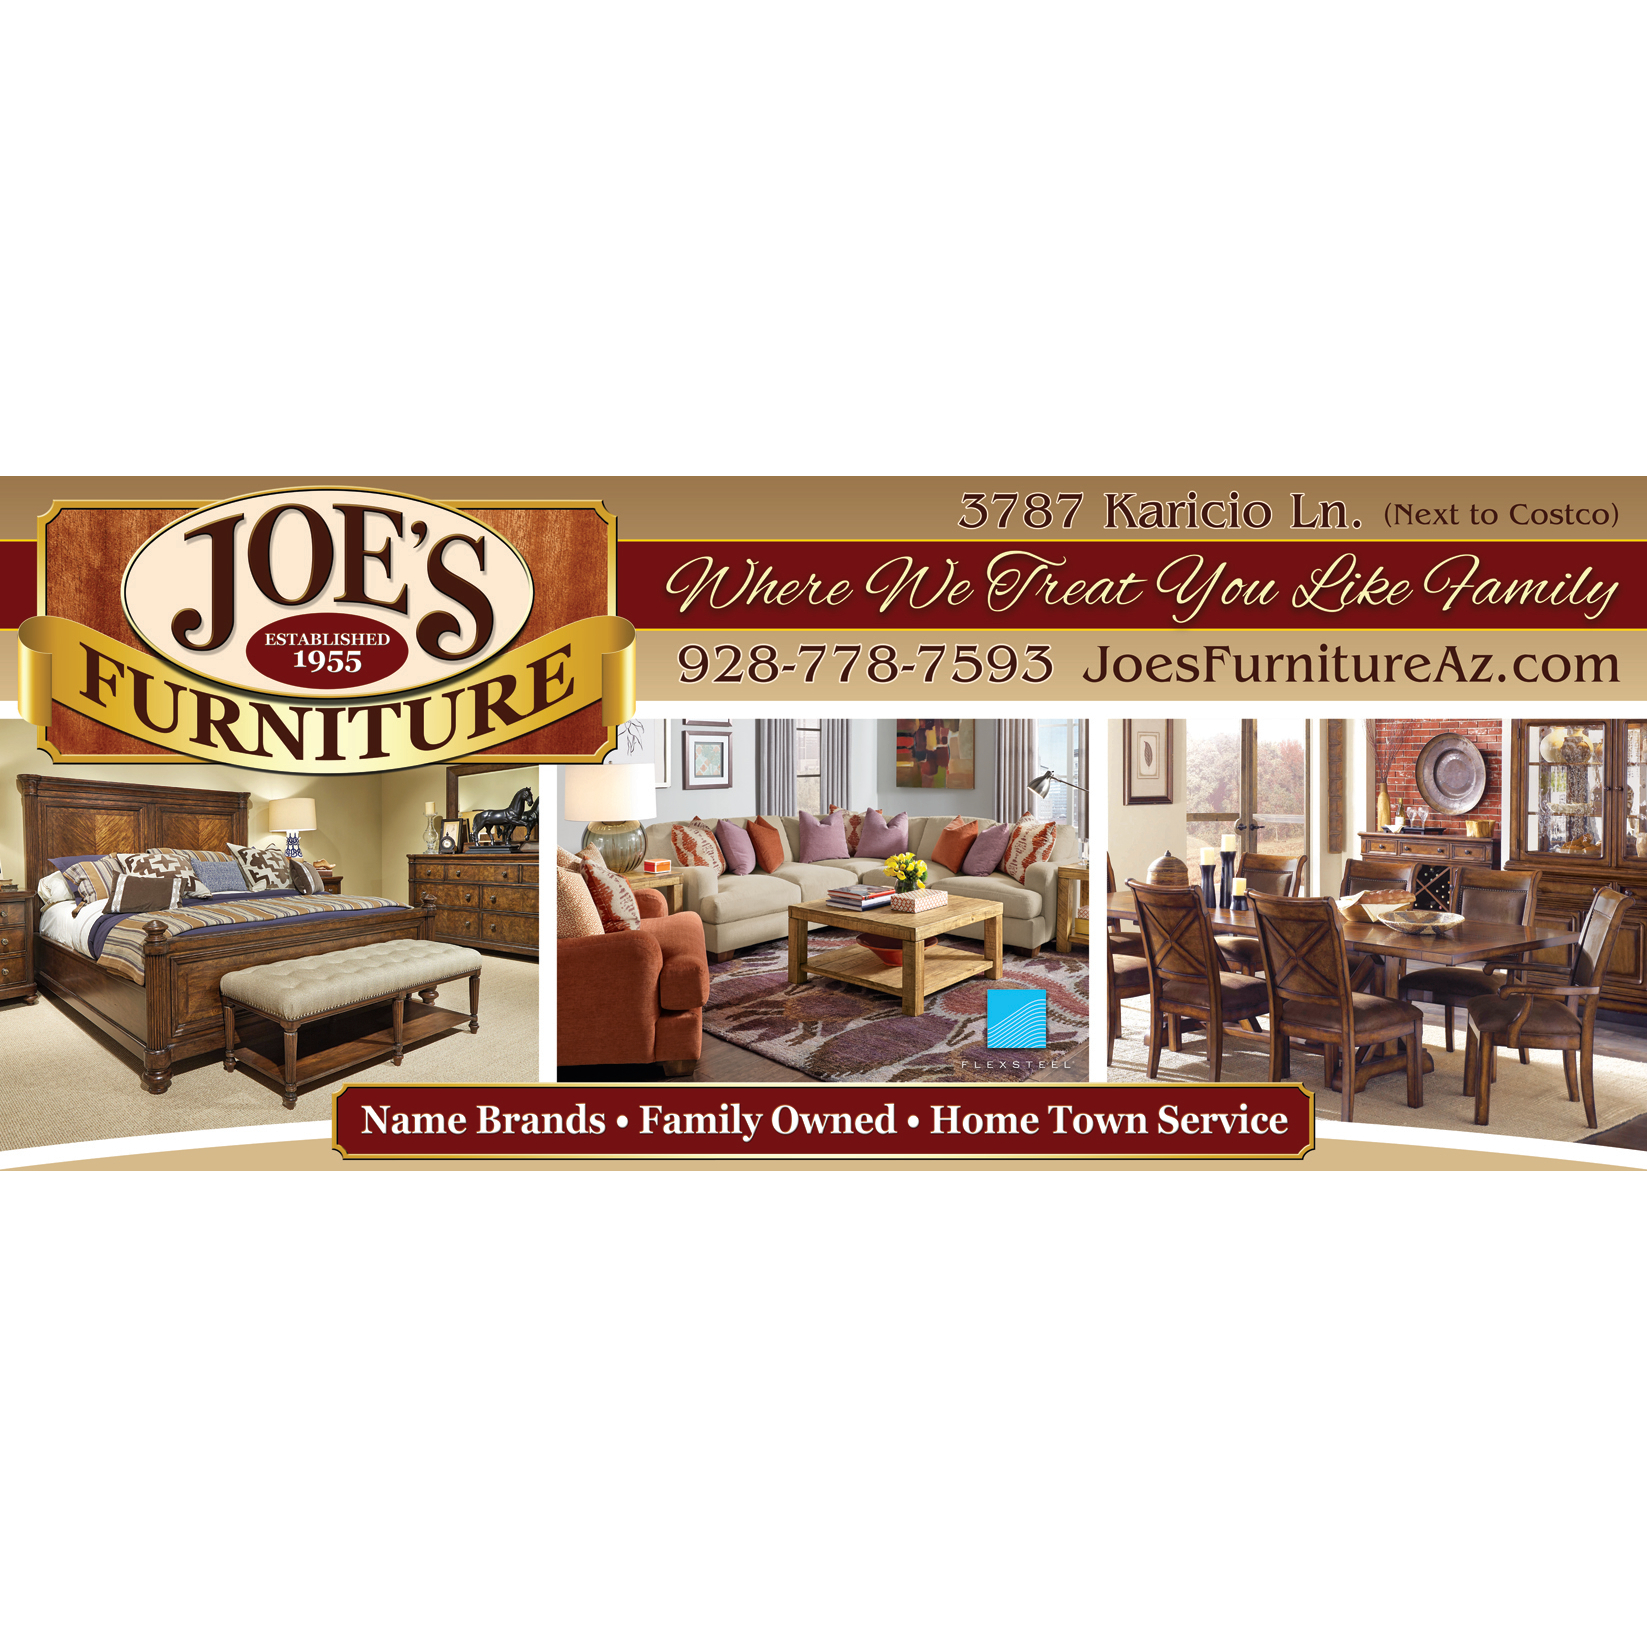 Joeu0027s Furniture